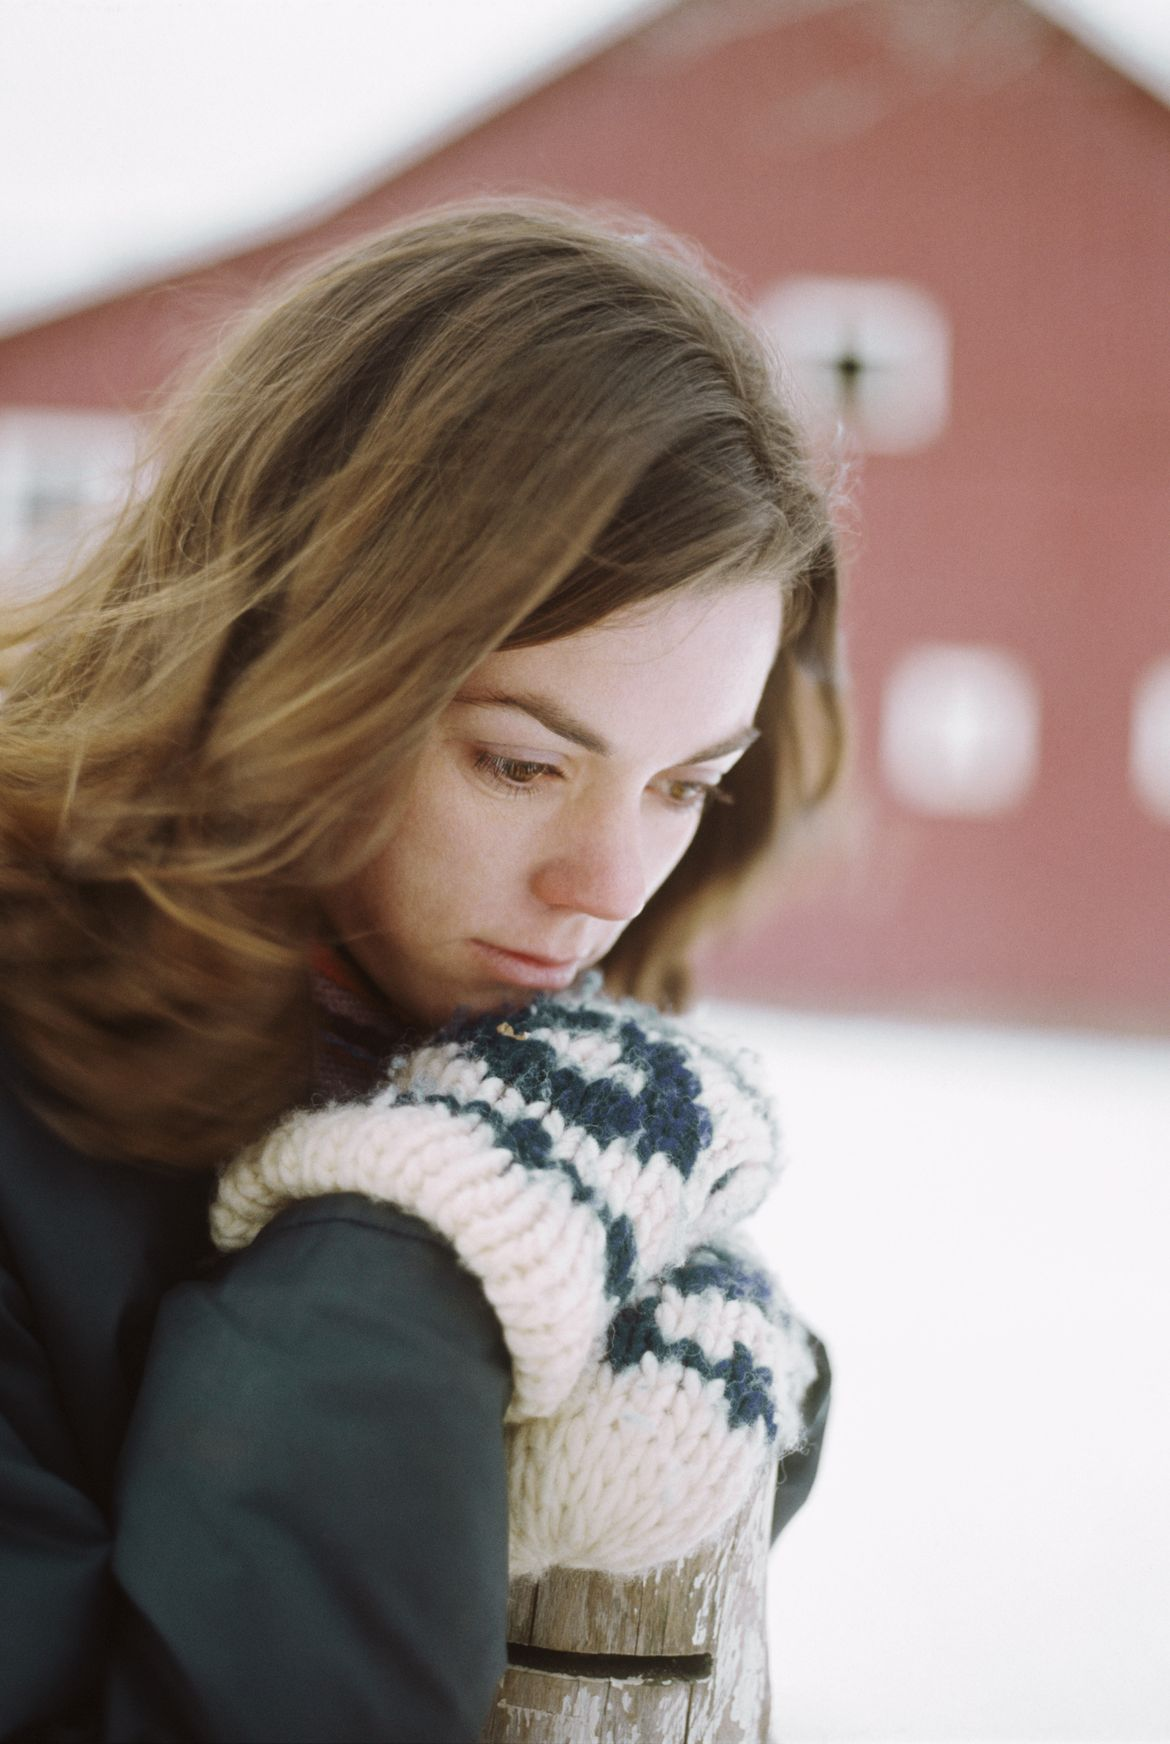 winter health myths - More people are depressed during the winter months than at any other time of the year